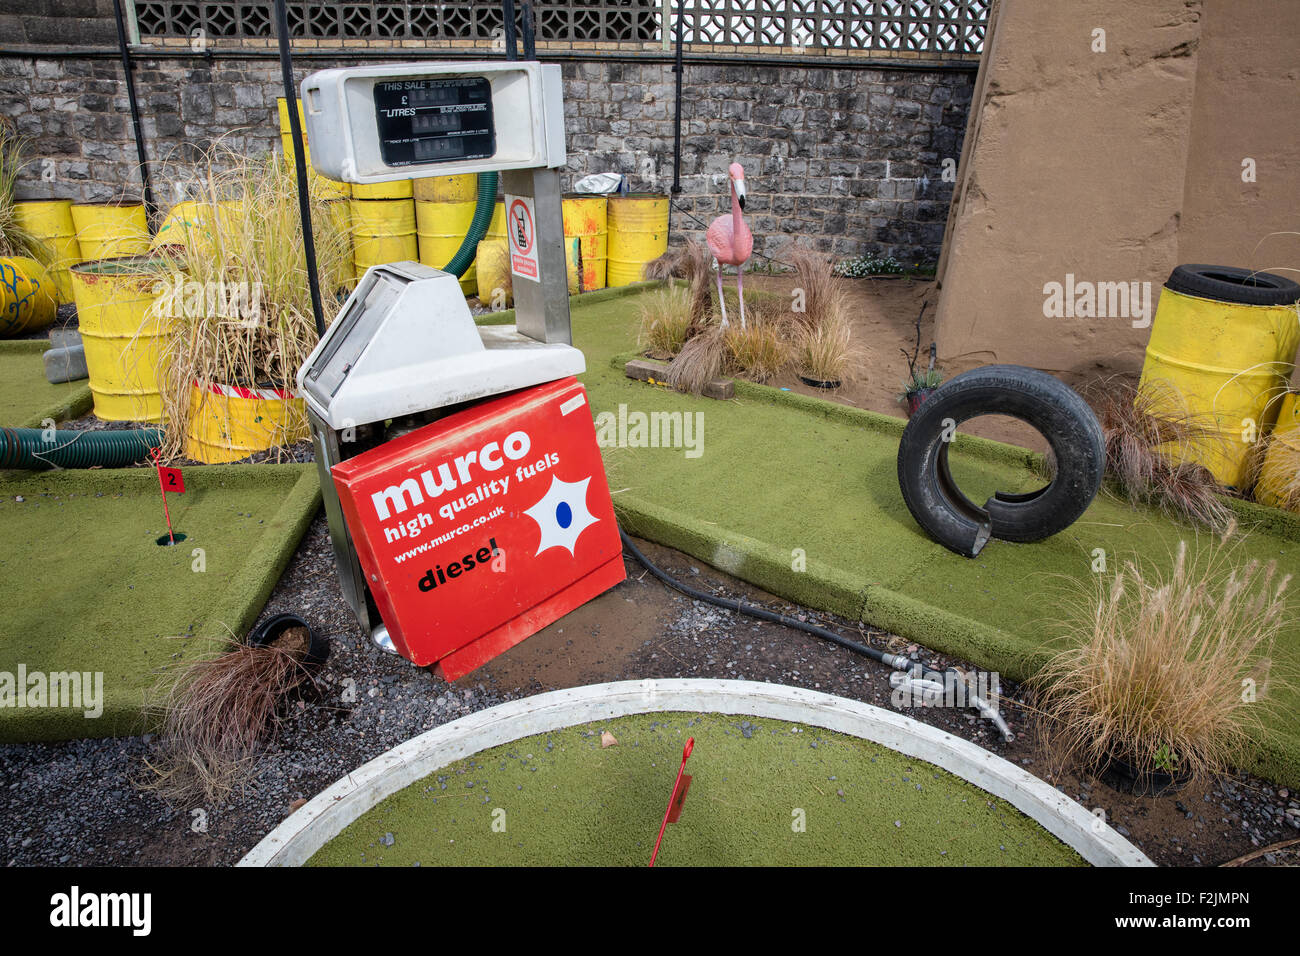 Crazy Gulf course at Banksy's Dismaland in Weston super Mare with battered fuel pump oil drums and old tyres - Stock Image